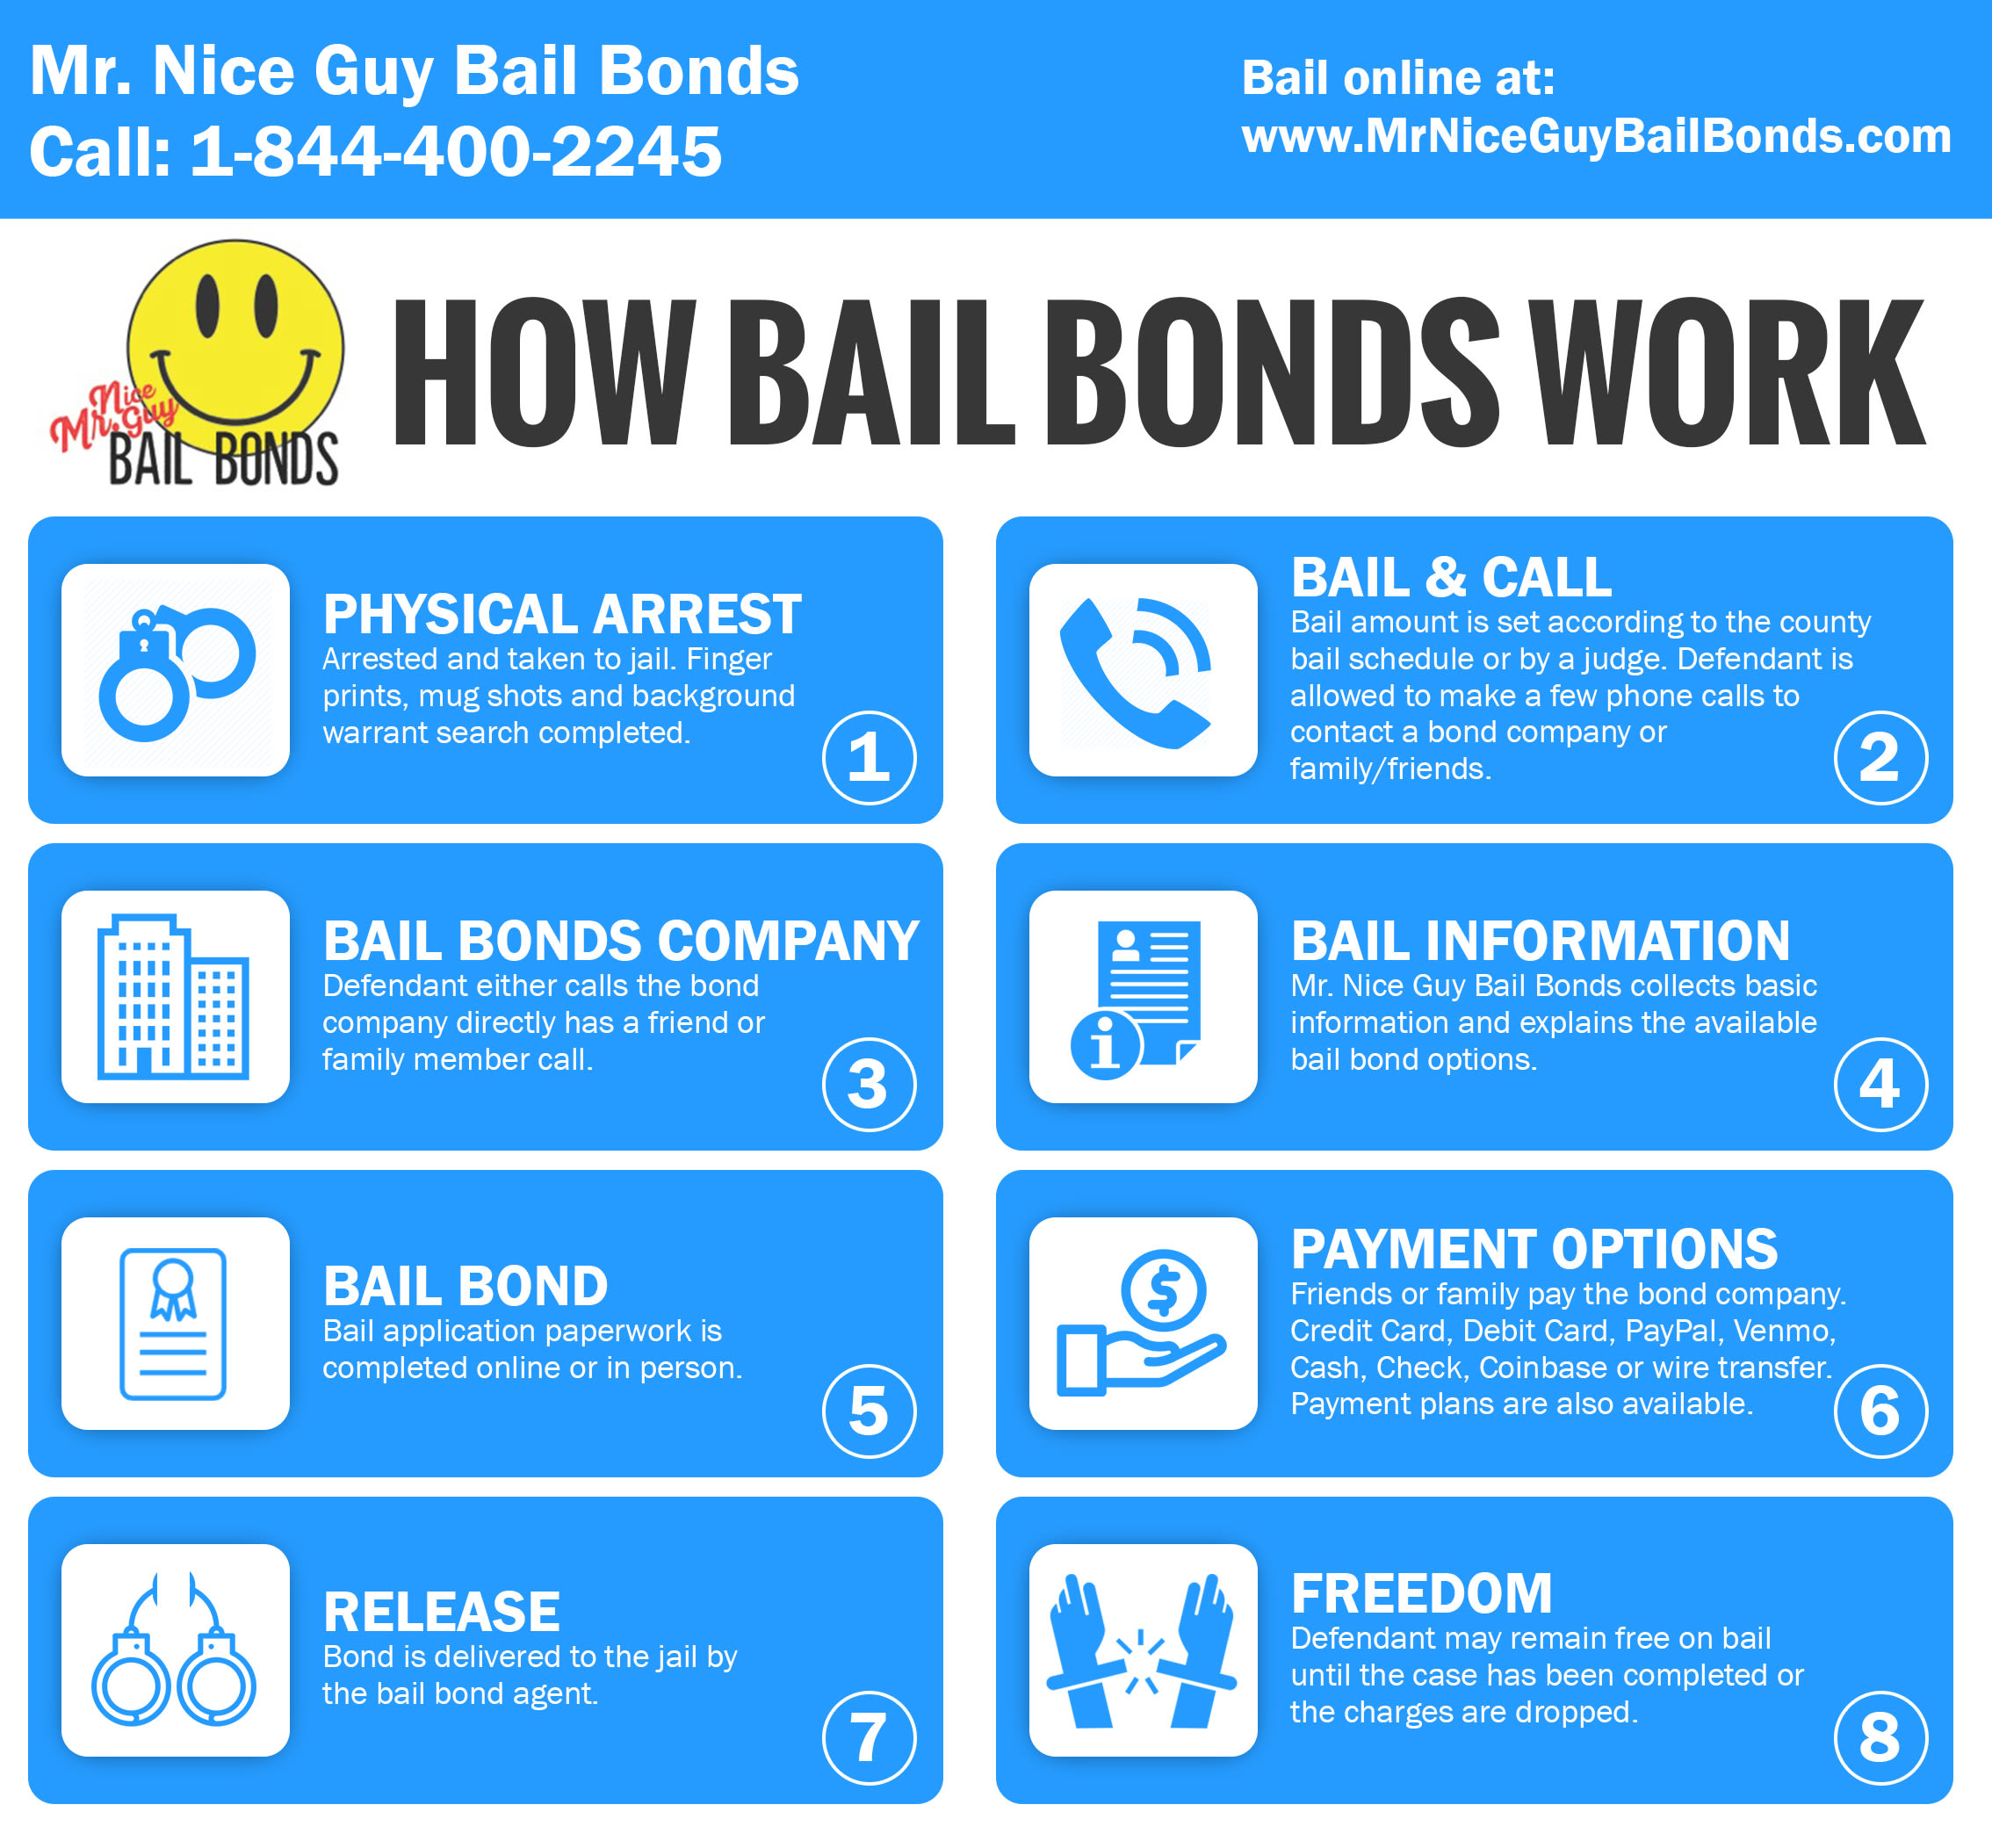 How bail bonds work in California infographic